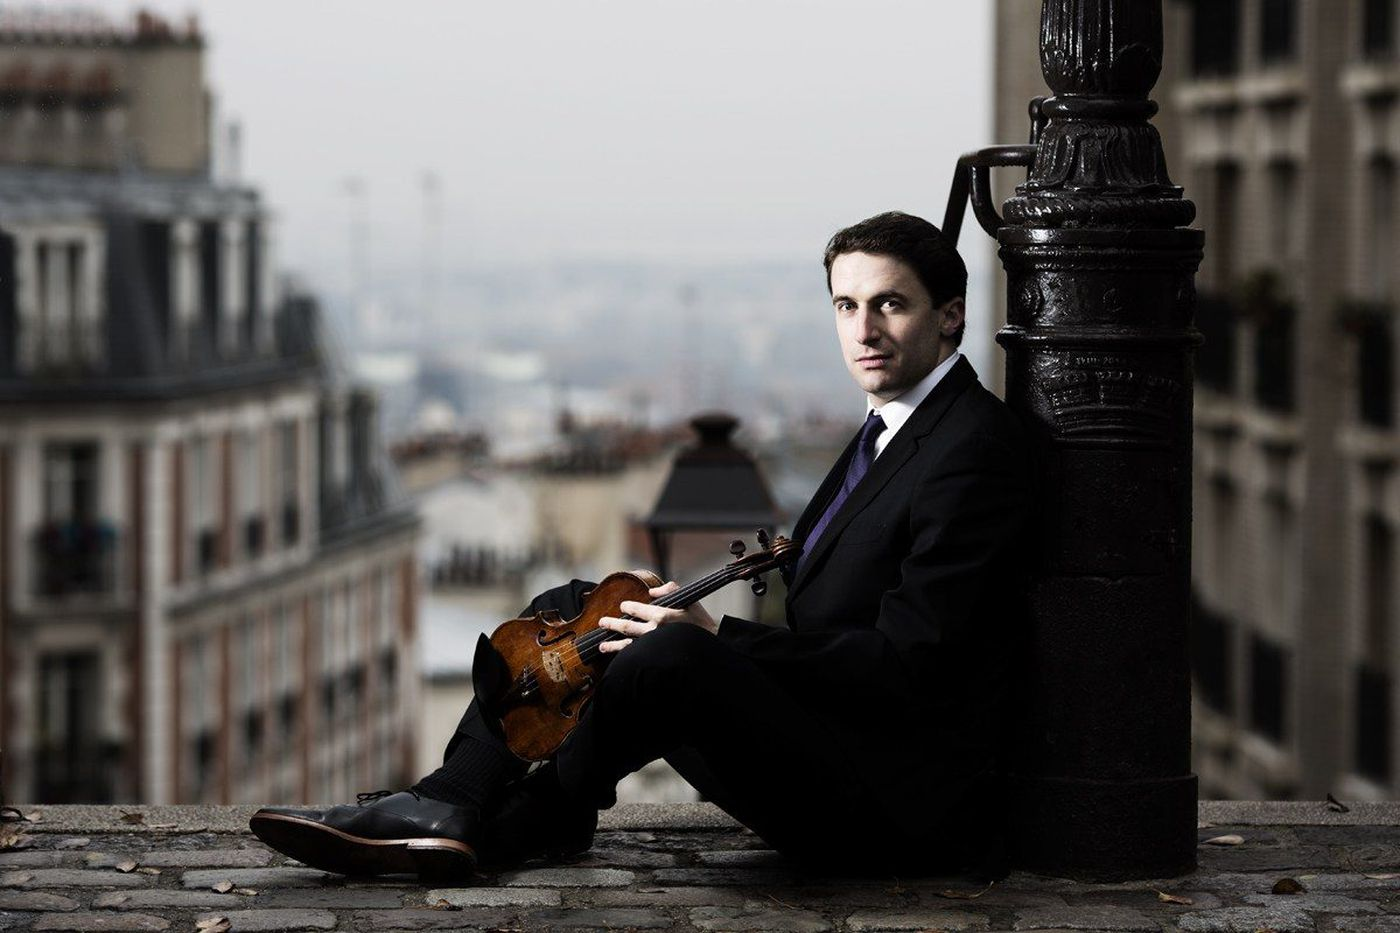 At Curtis, a night of Big Schubert with Berlin Philharmonic concertmaster and friends